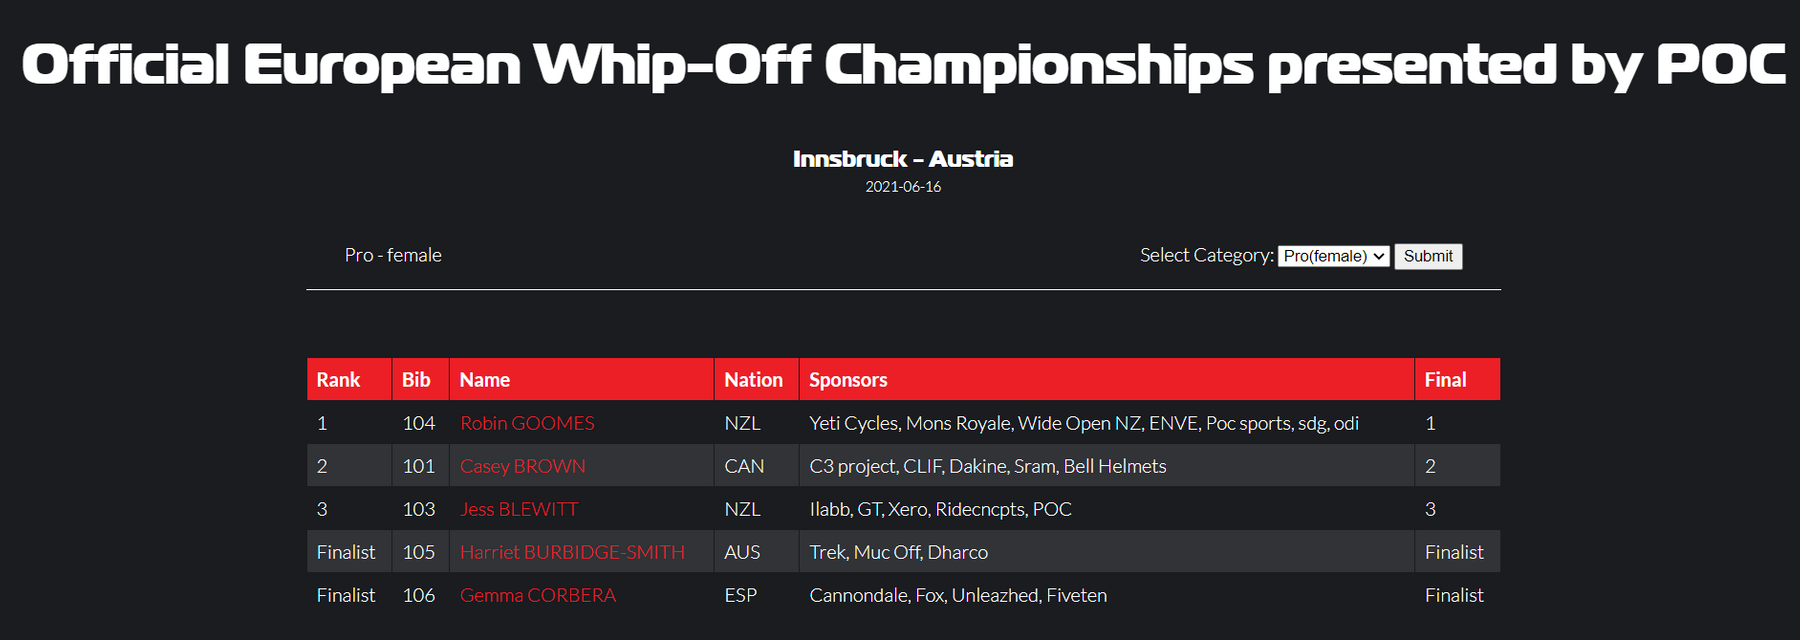 Whip-off Champs Women's results